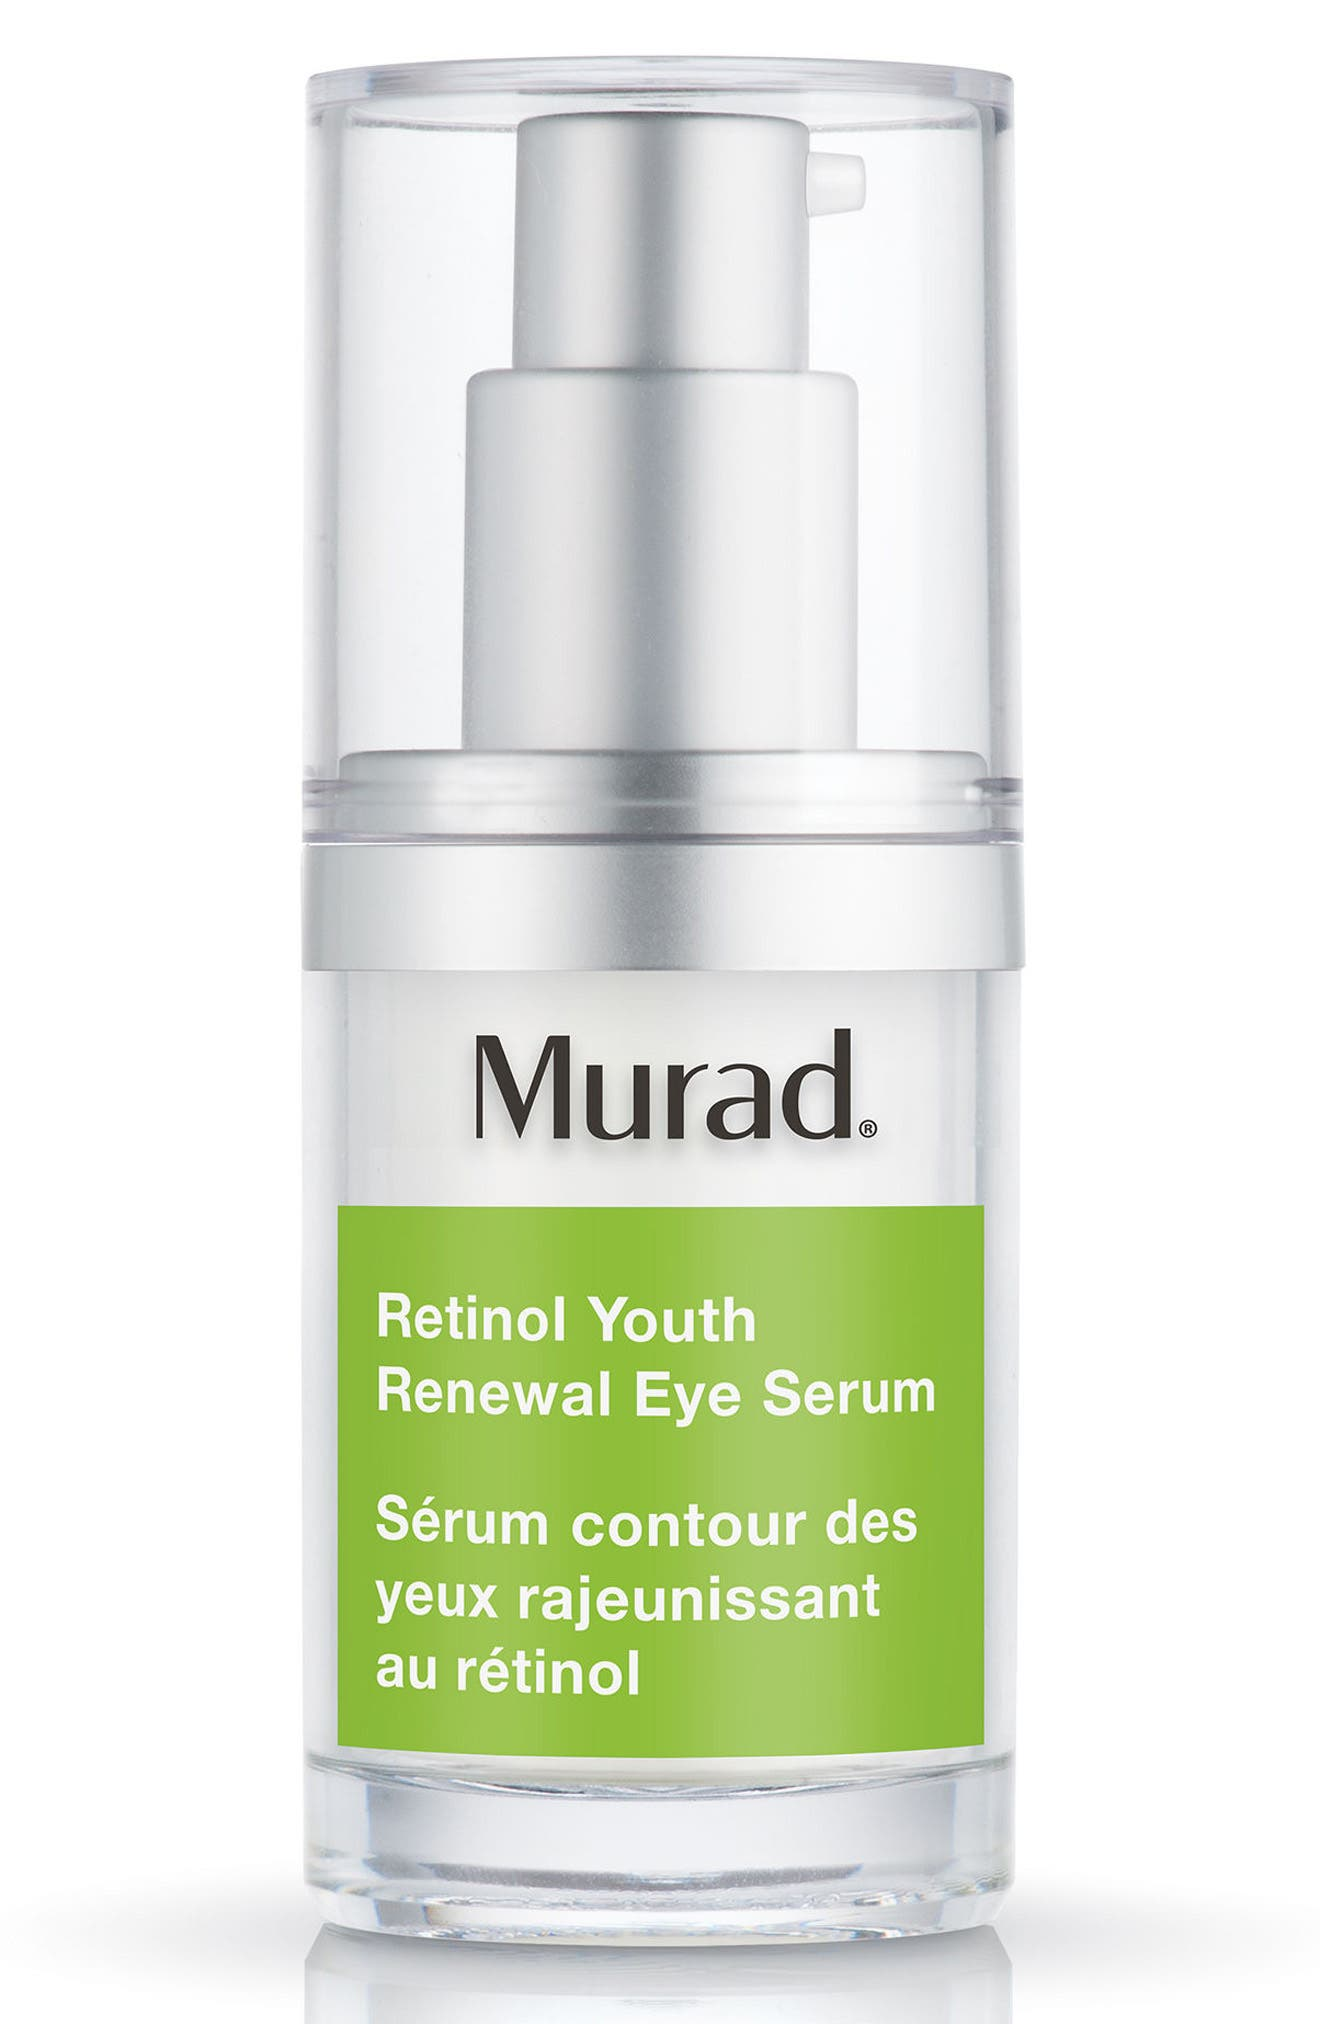 Murad® Retinol Youth Renewal Eye Serum